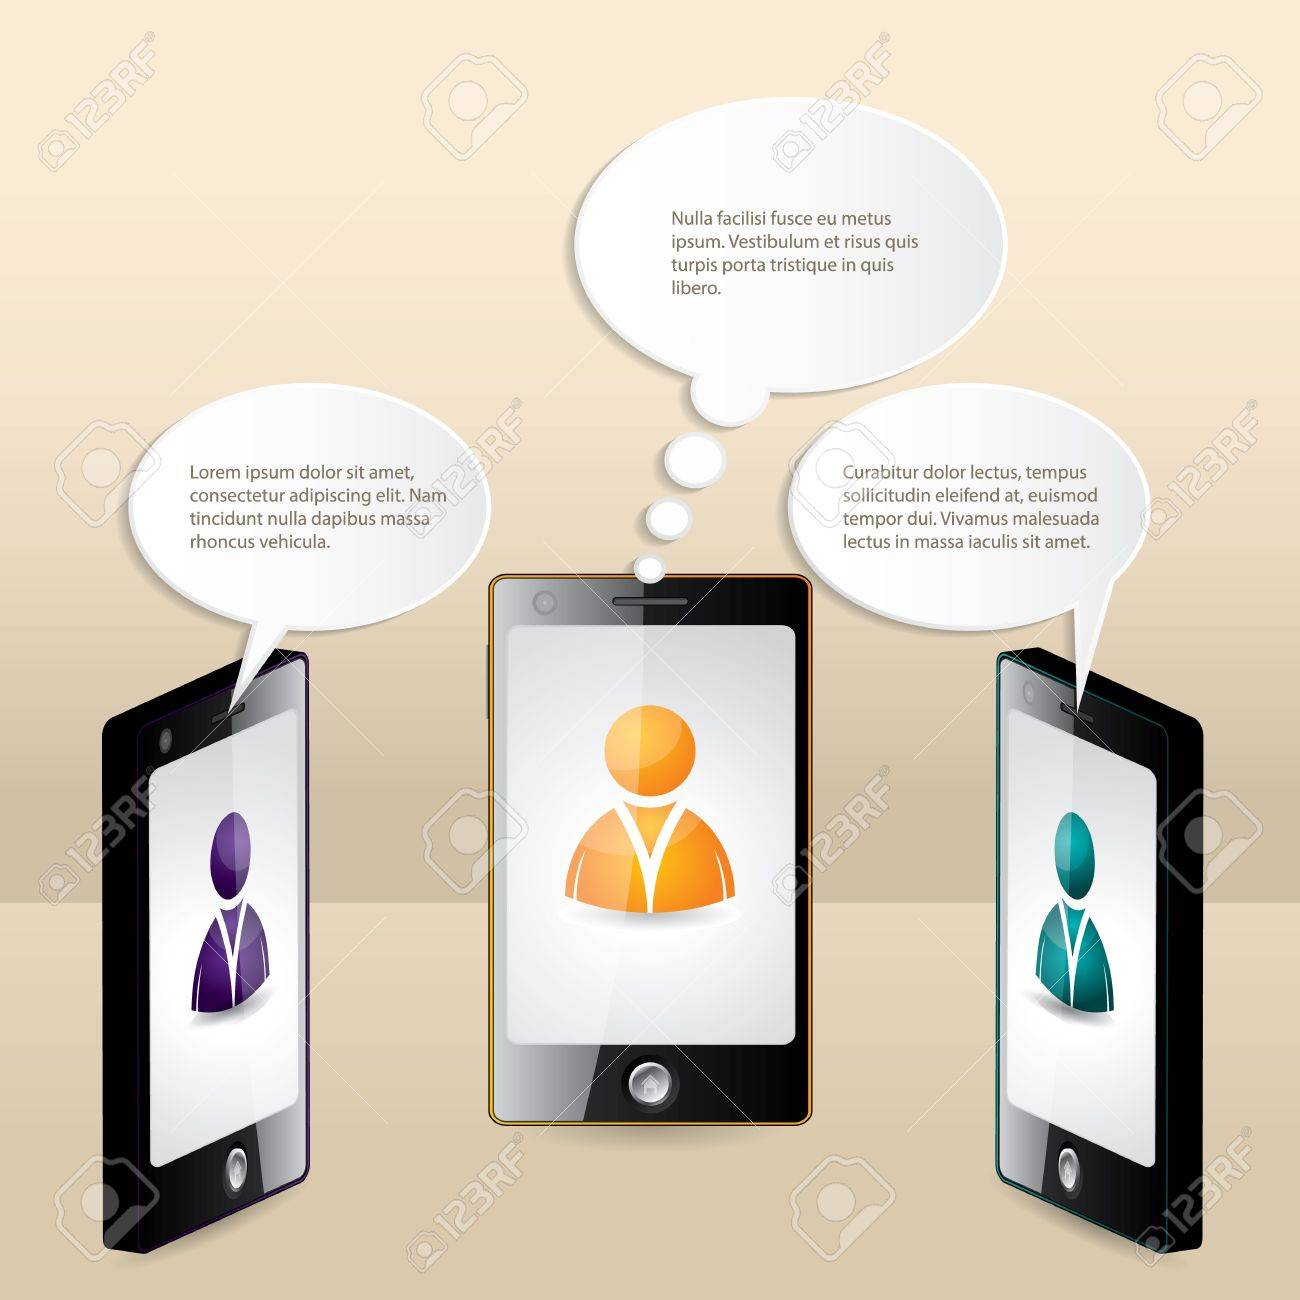 Smartphone conversation illustrated with speech bubbles and sample text Stock Vector - 20977887